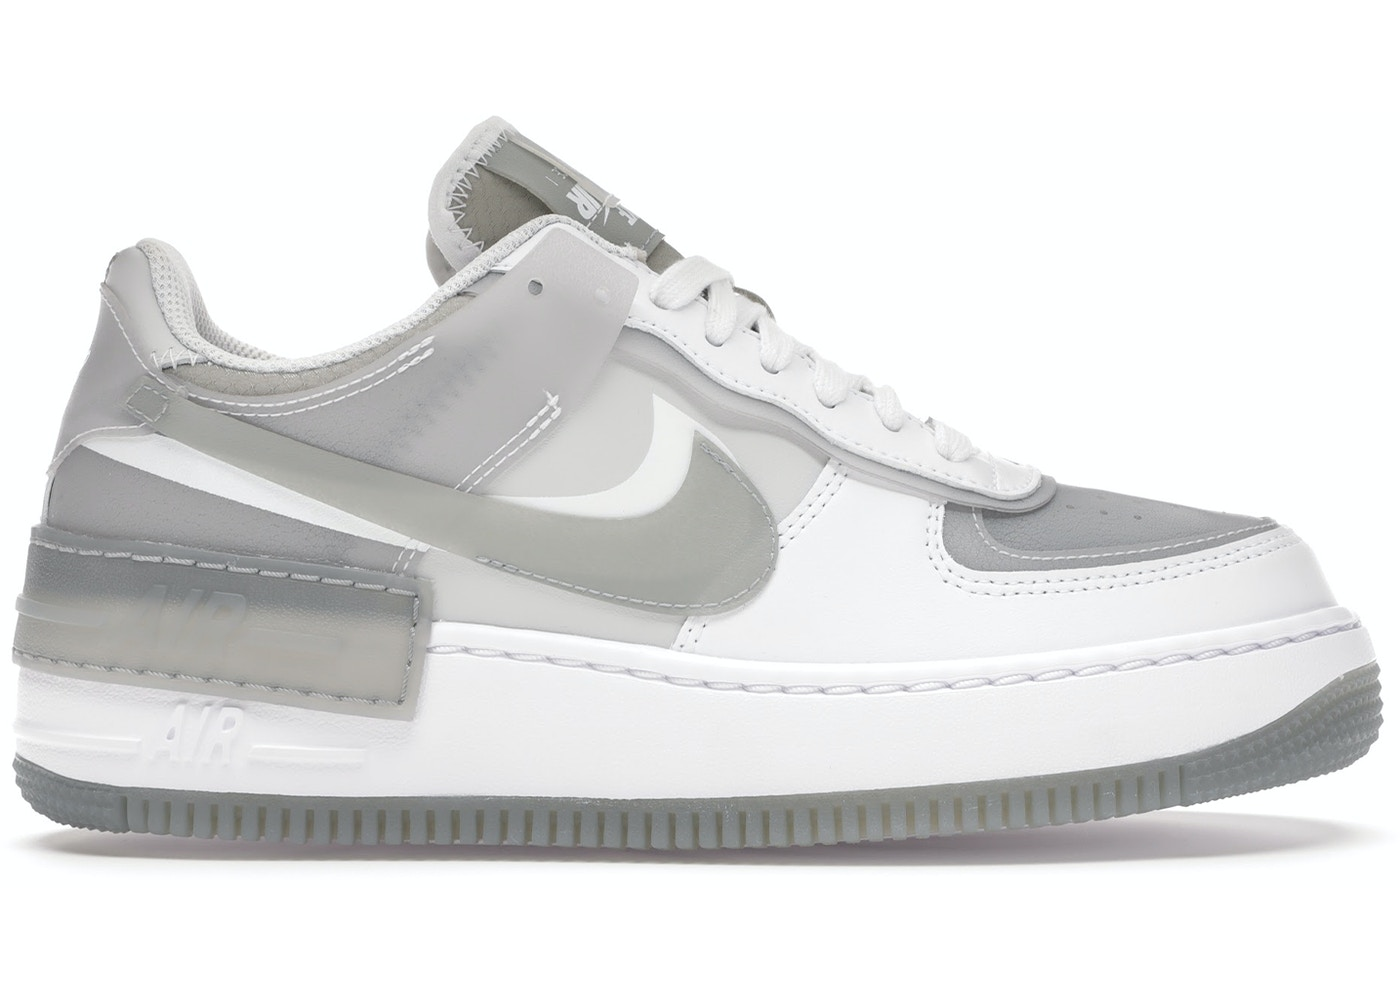 2yjx7gmfne37dm Grey suedes, pastel pinks, and neutral white leathers then construct the paneling elsewhere, allowing for the aforementioned to stand out much more pronounced. https stockx com nike air force 1 shadow white grey w